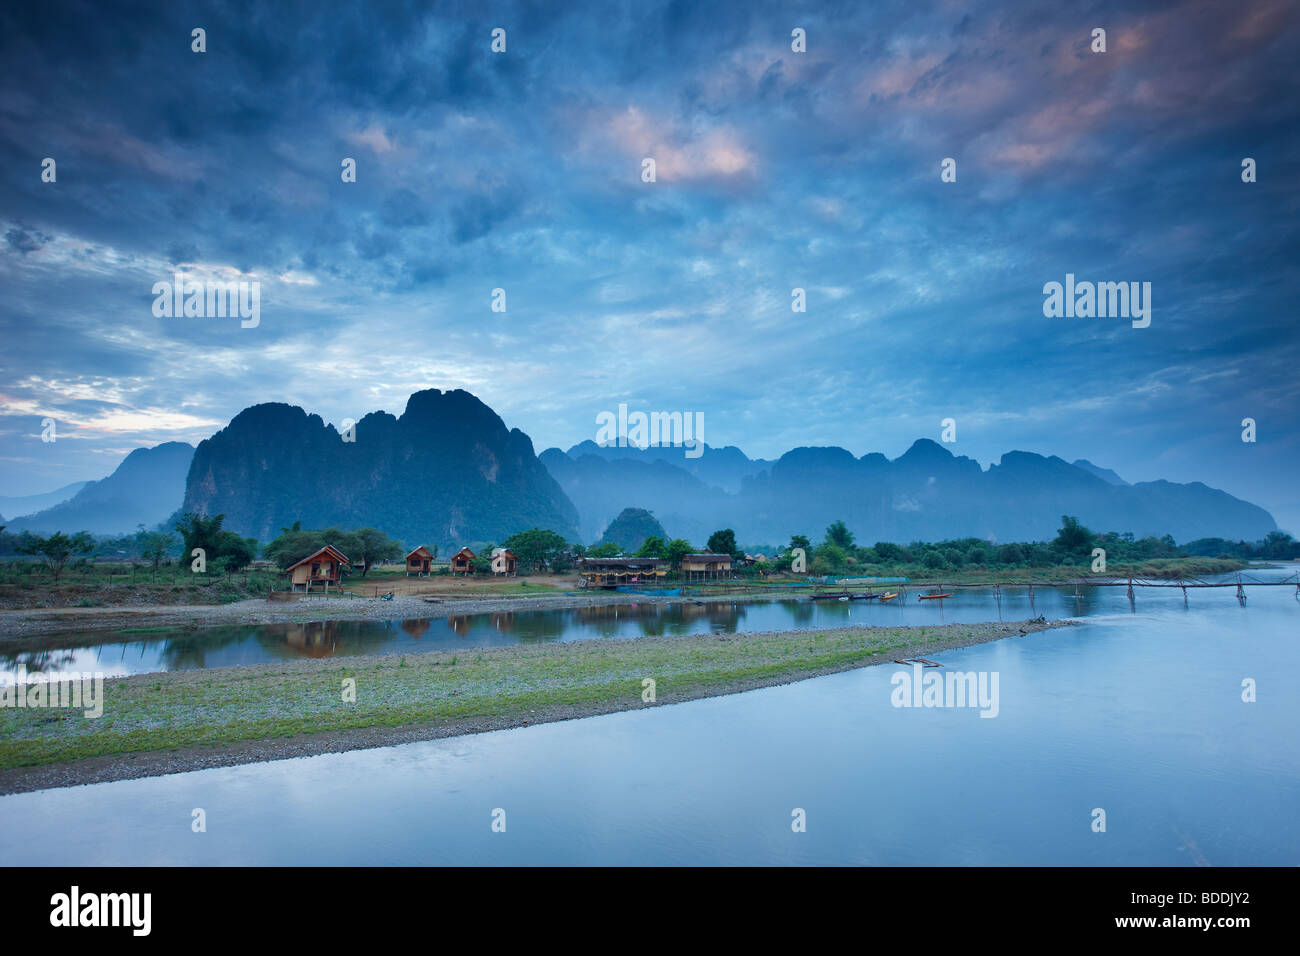 Alba sulle montagne e Nam Song River a Vang Vieng, Laos Immagini Stock